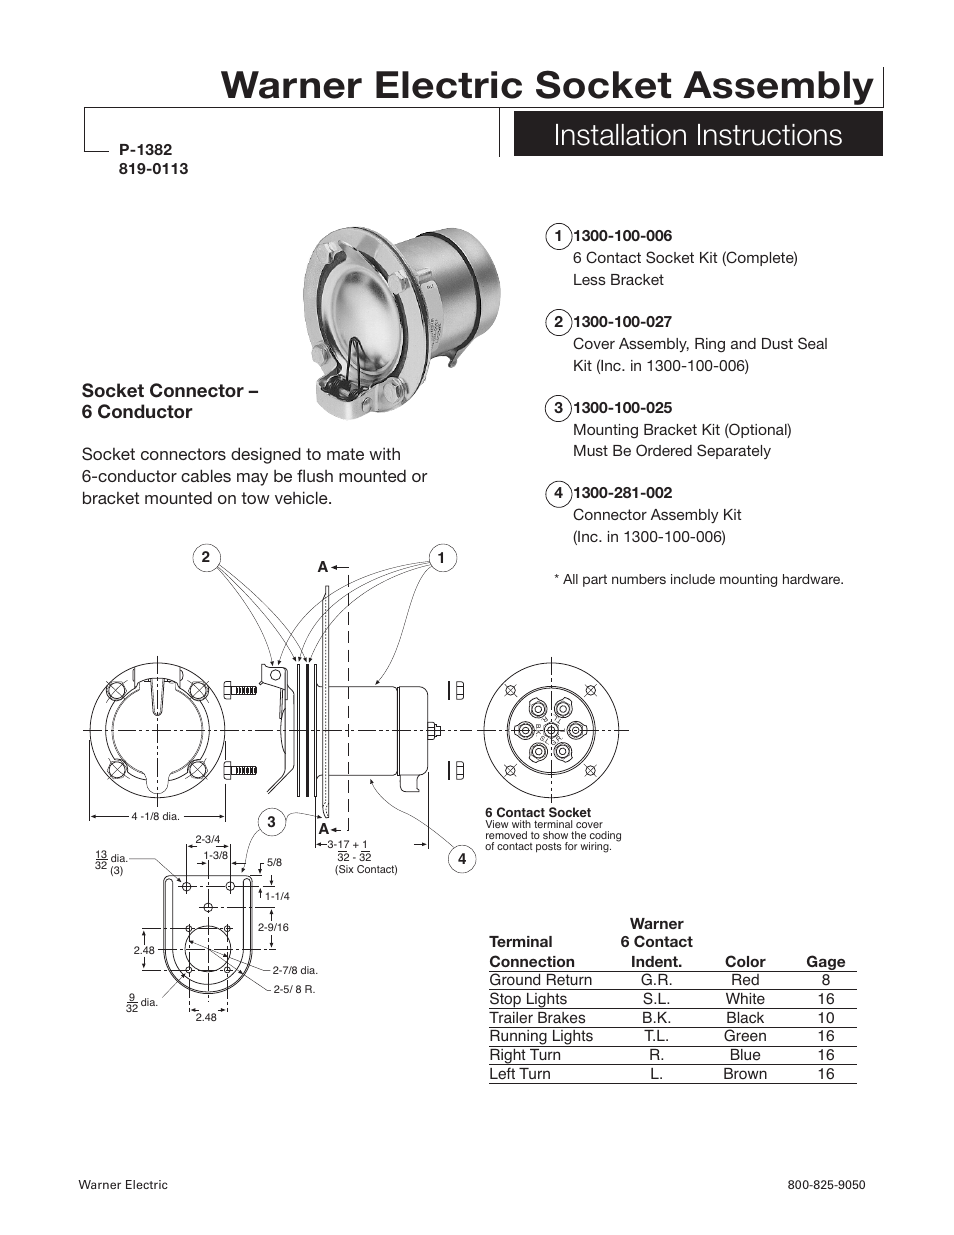 Warner Electric Socket Assembly Installation User Manual How To Wire An Electrical Outlet Wiring Wall Diagram 3 2 Pages